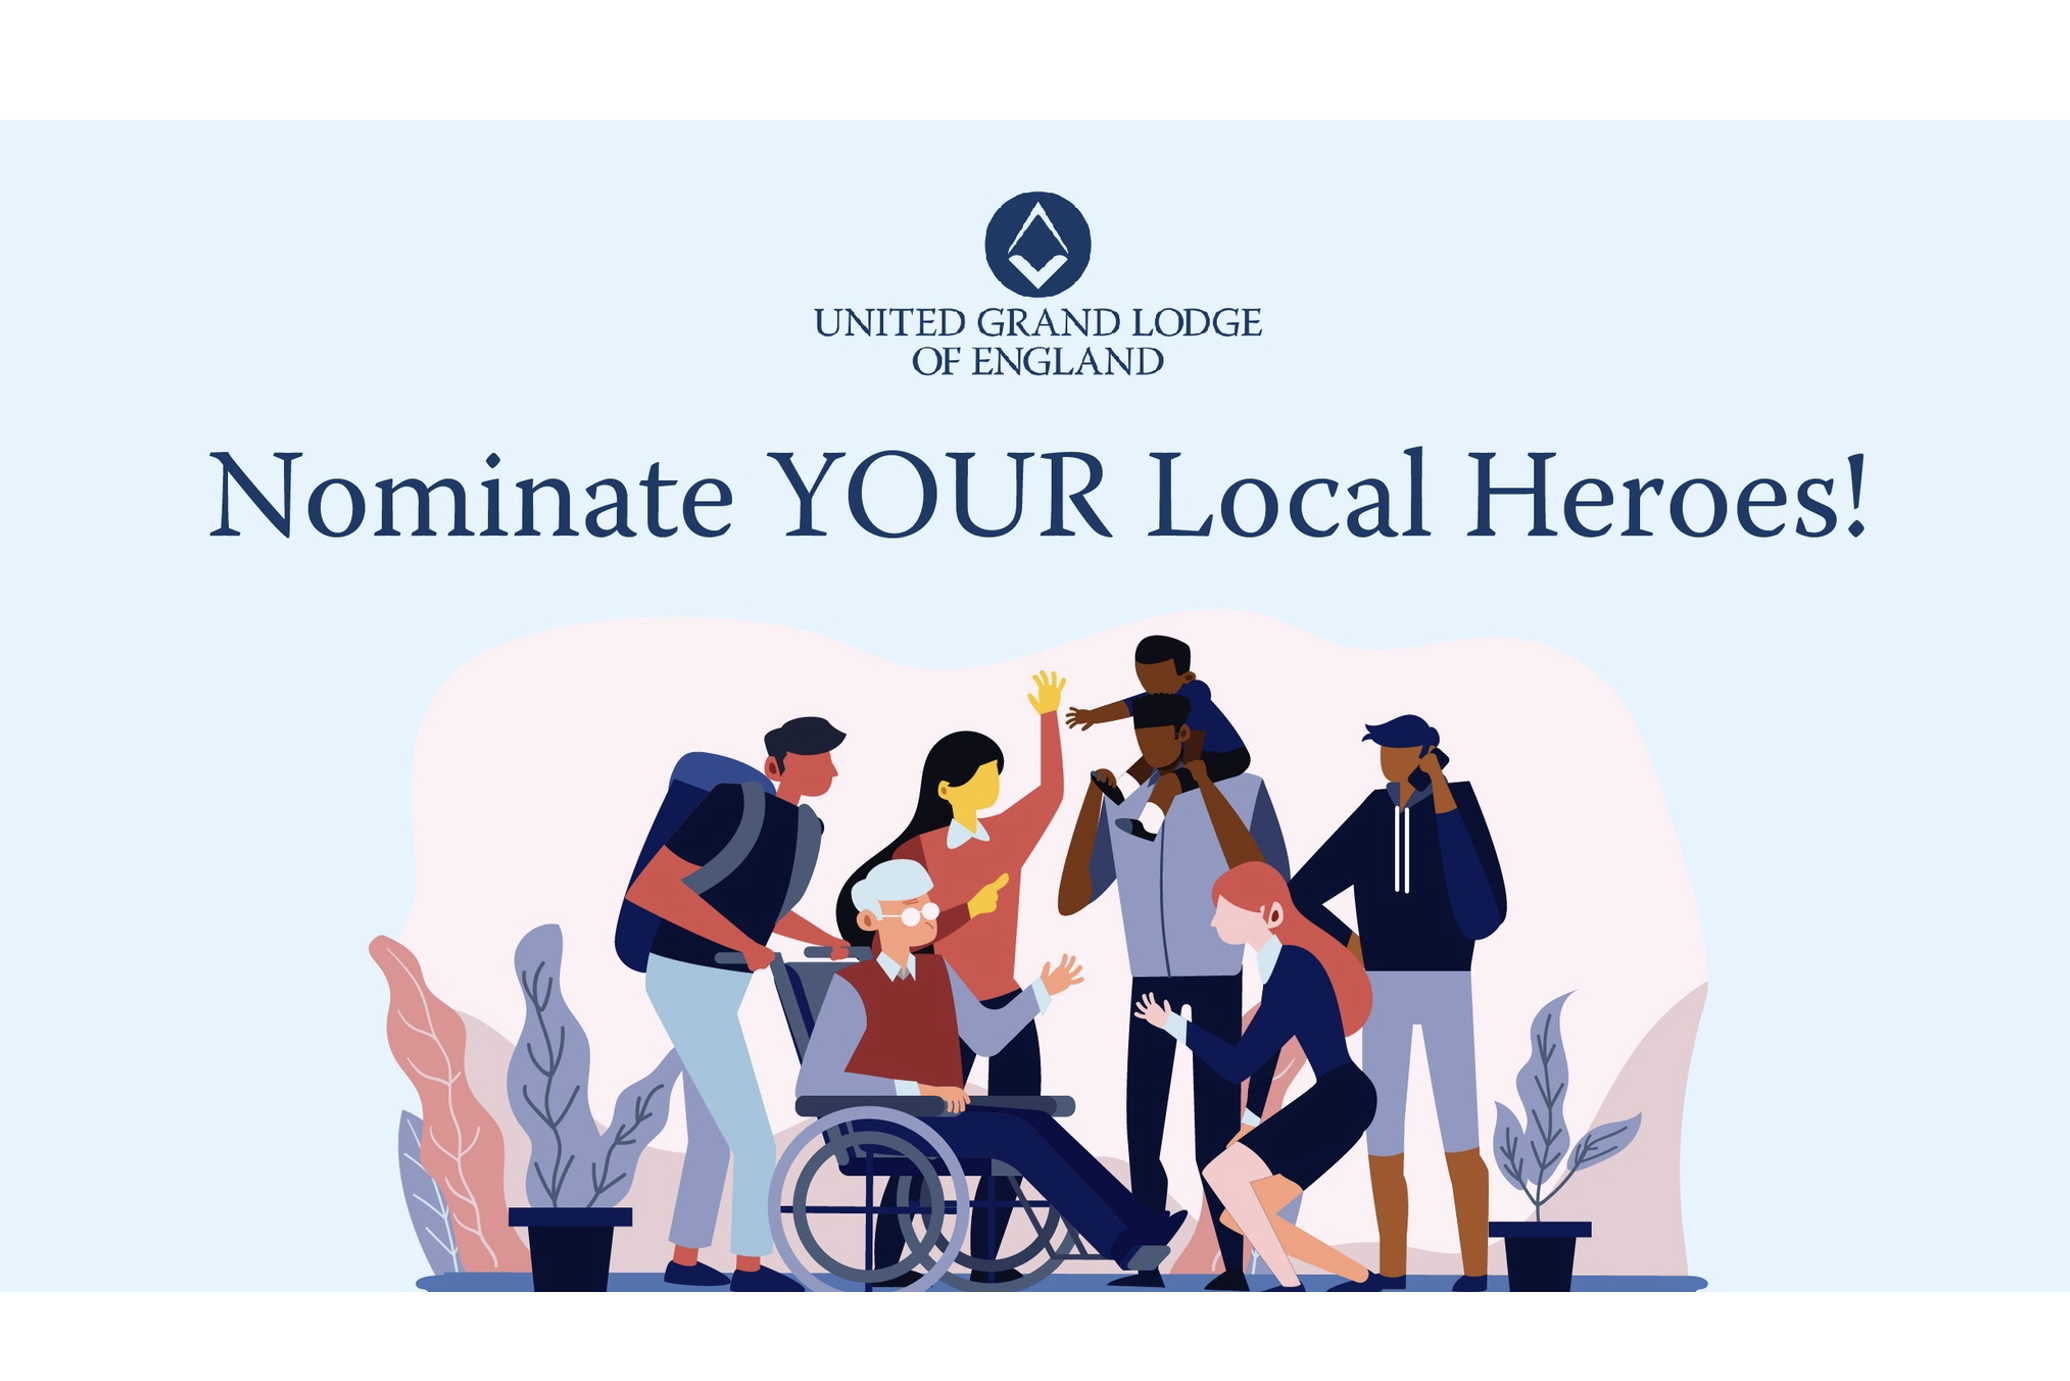 Nominate Your Local Heroes